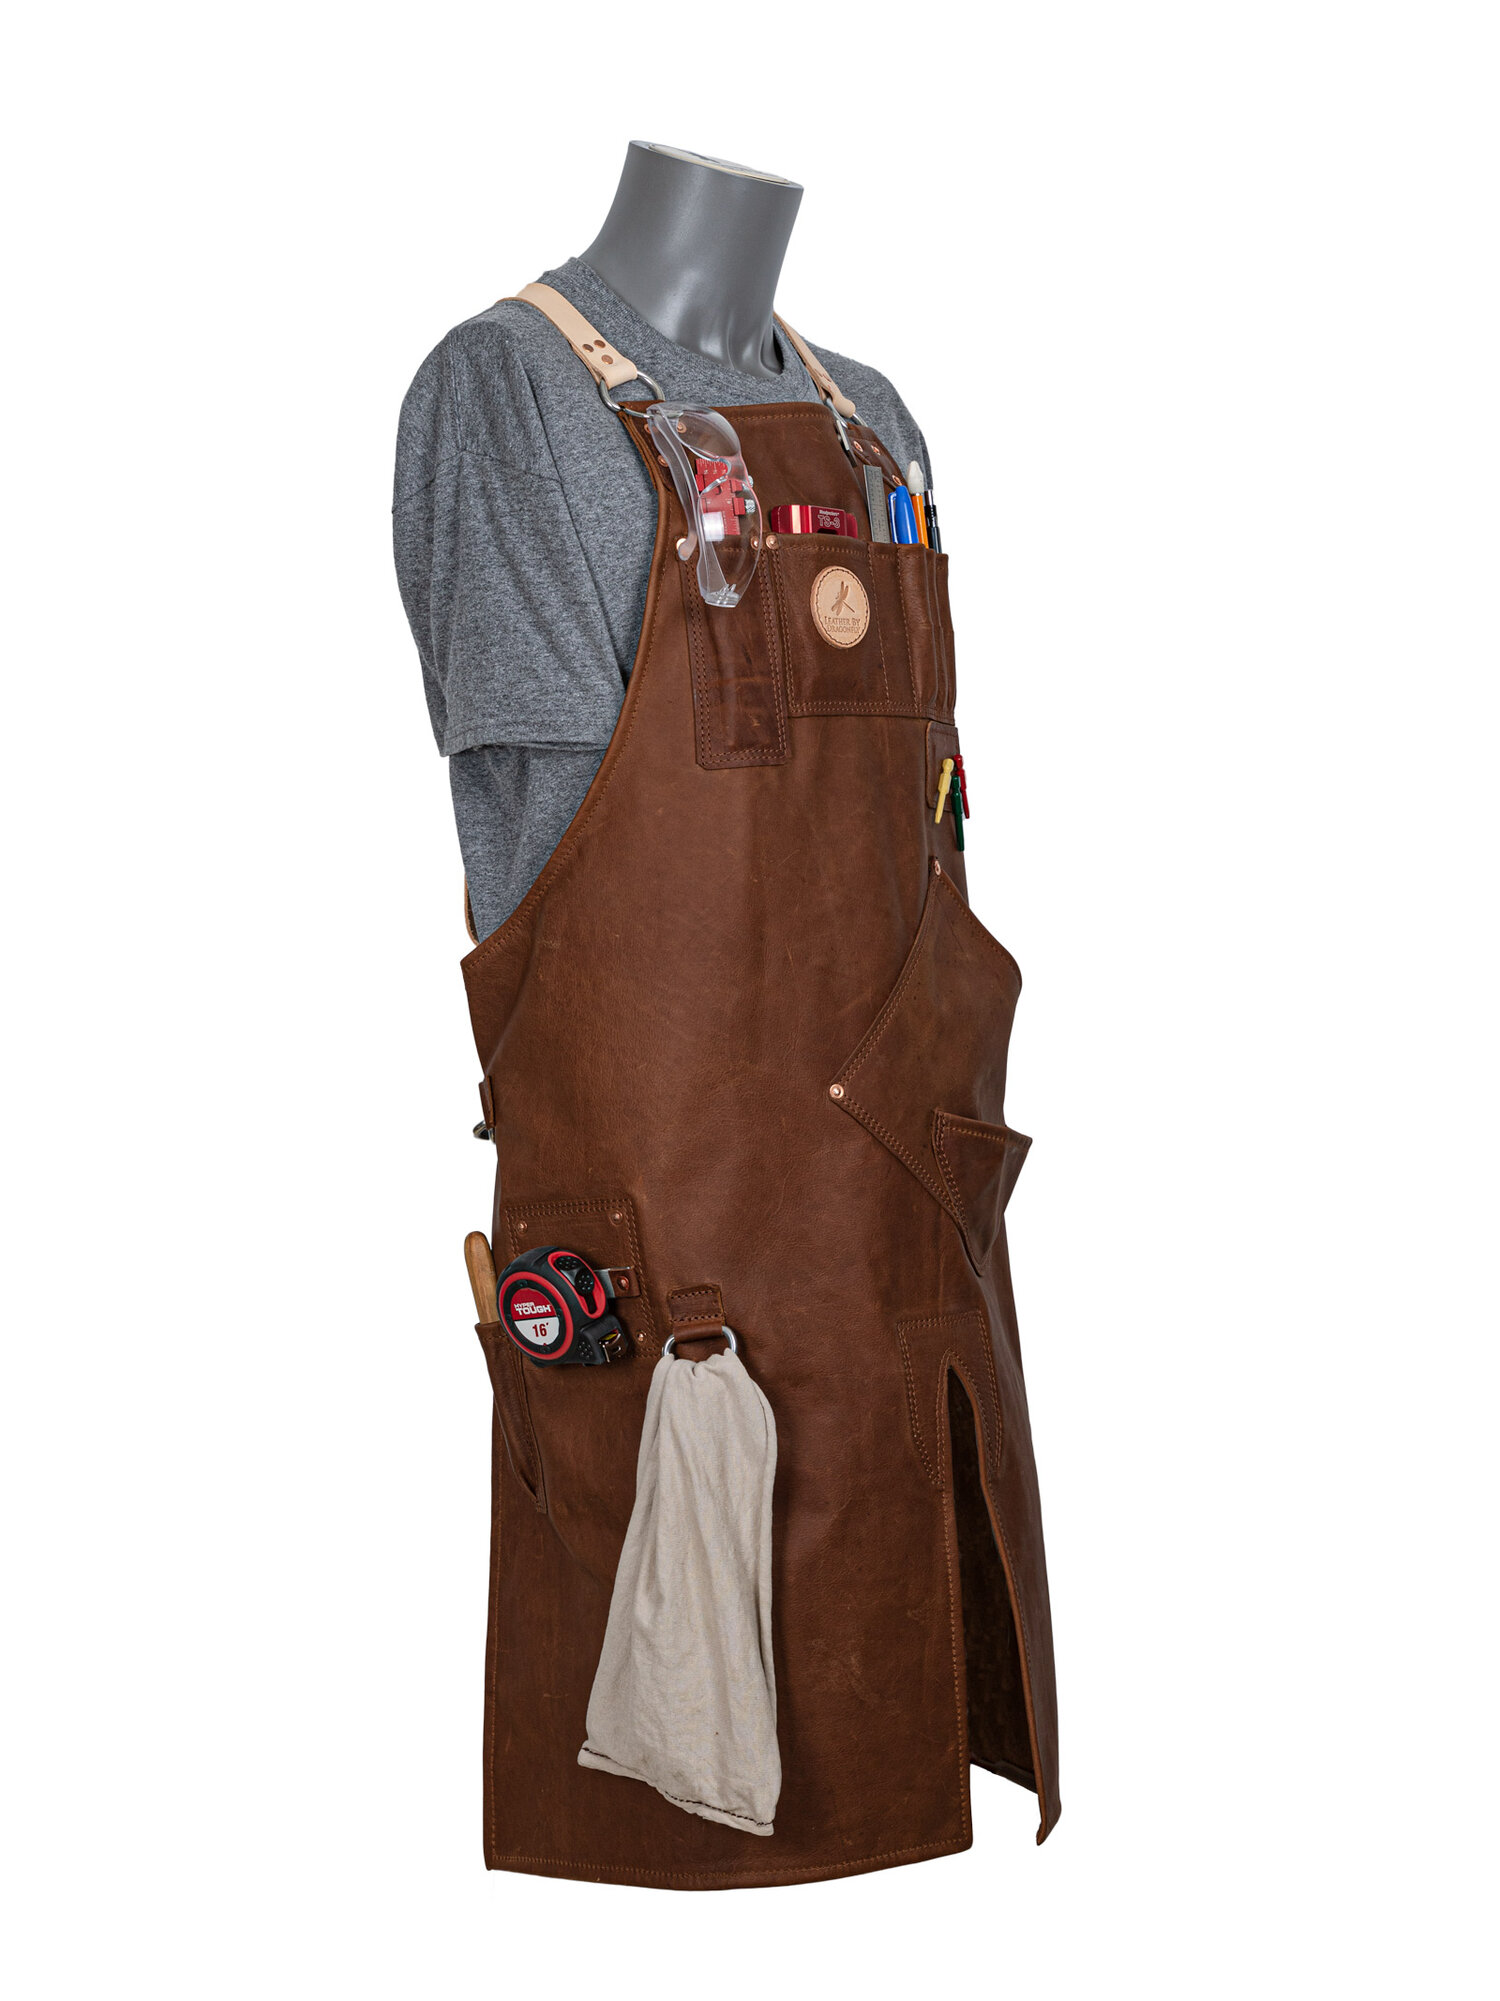 Dragonfly Leather Apron